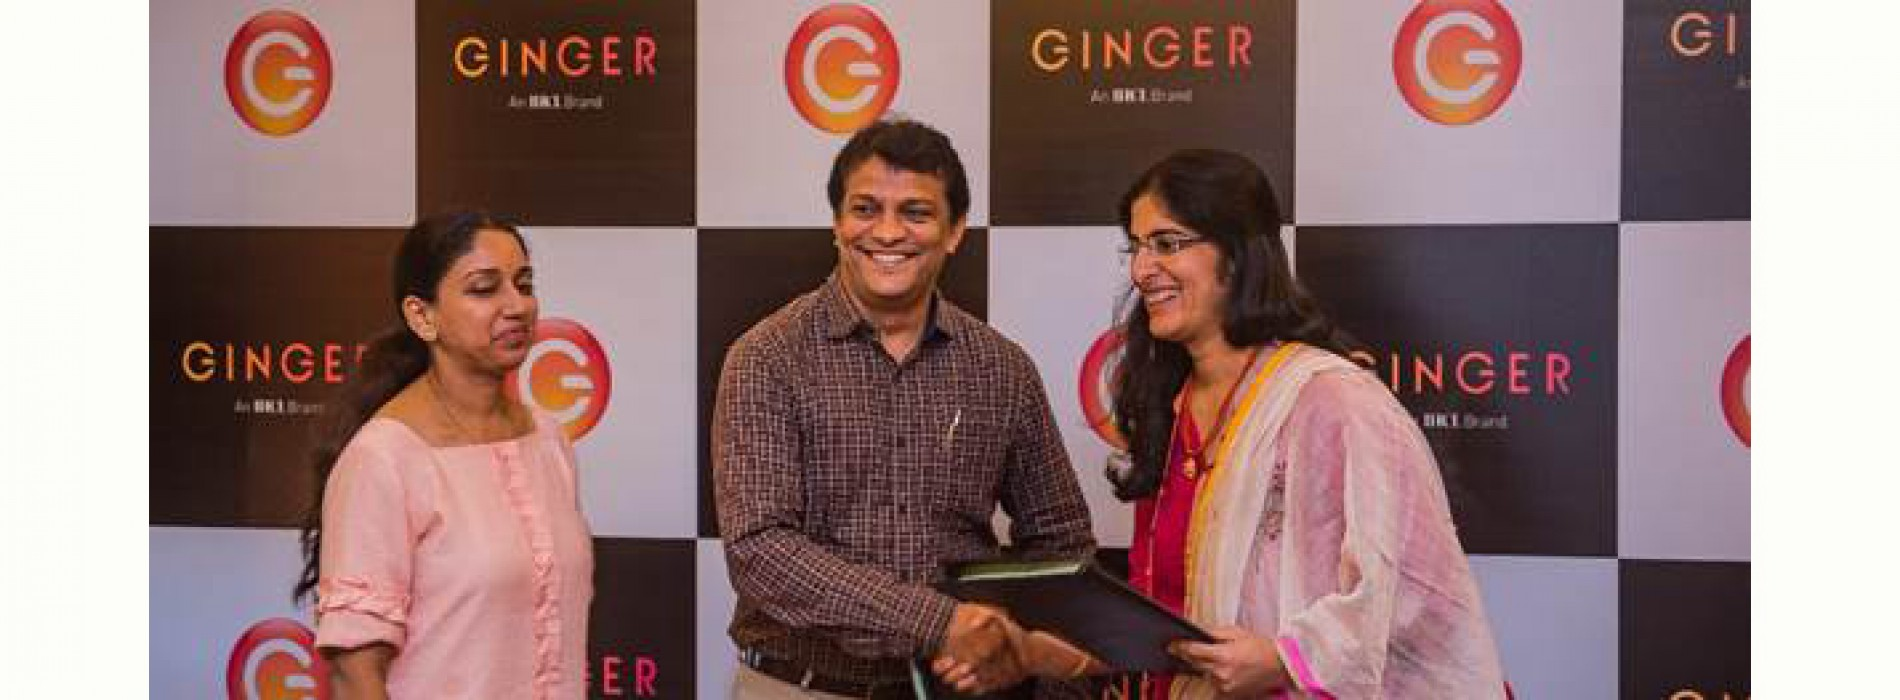 Ginger signs third hotel in Goa